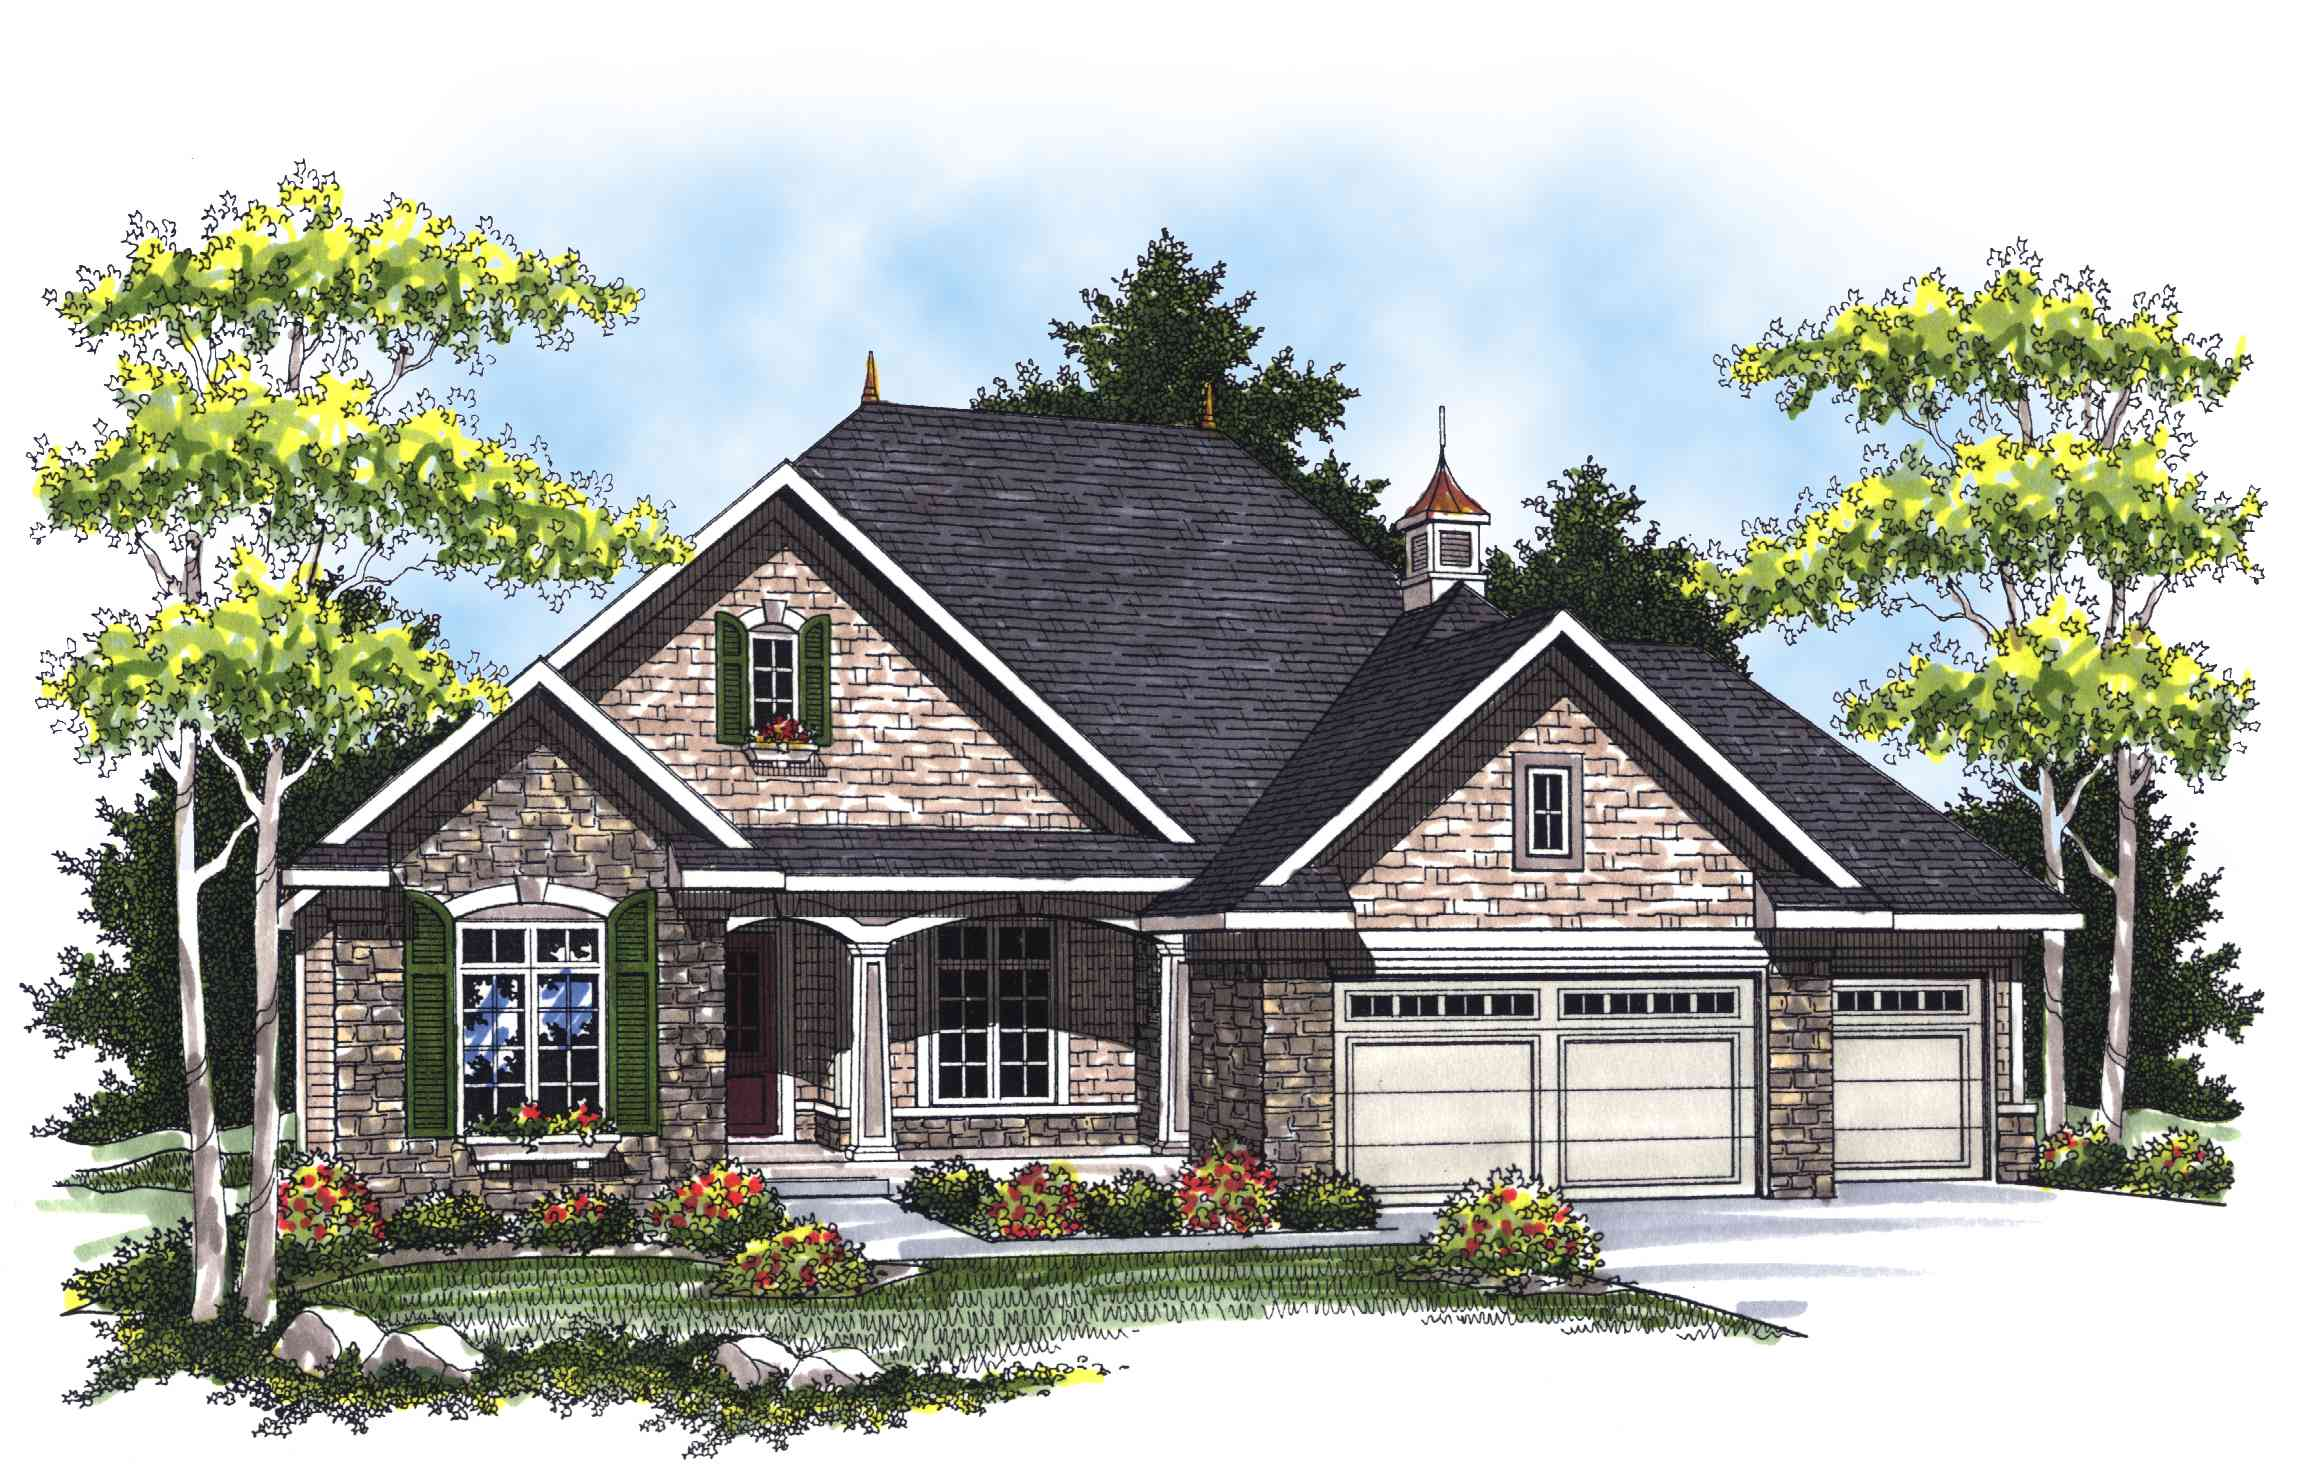 Home Plans: Country French Ranch Home Plan - 89265AH